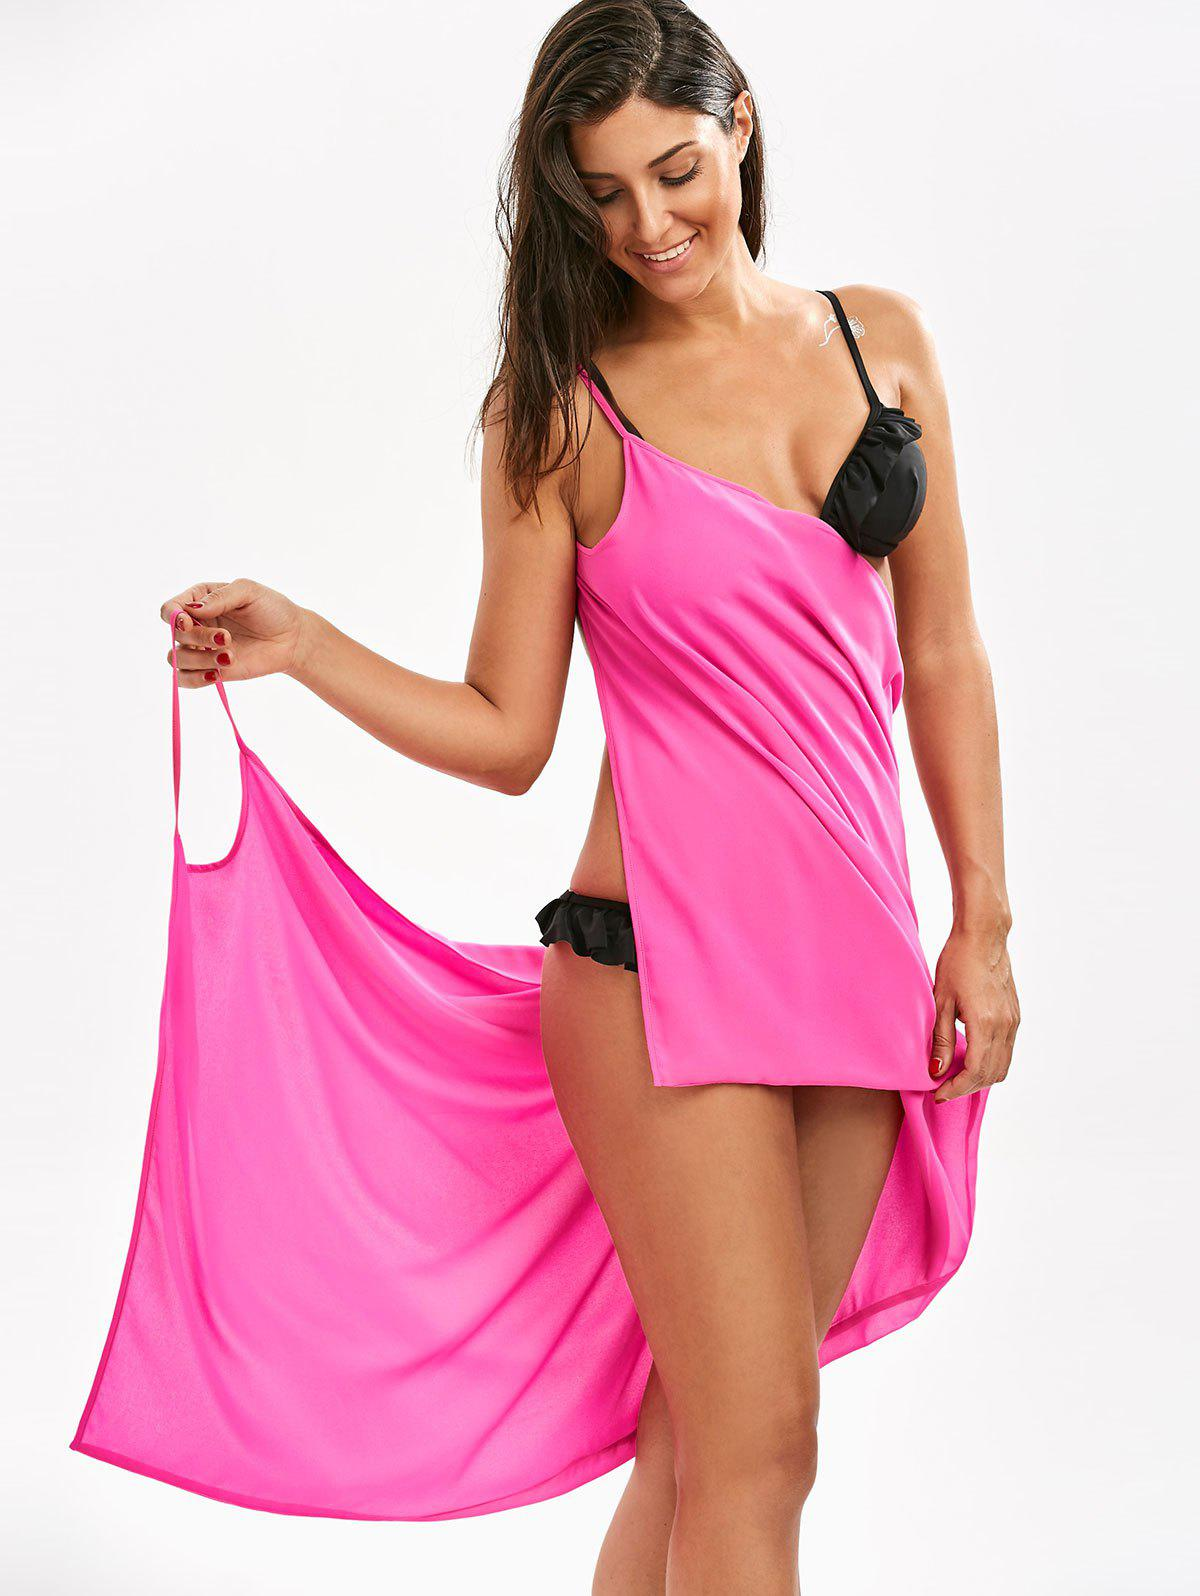 Chiffon Double-Deck Short Beach Cover Up - Frutti de Tutti S